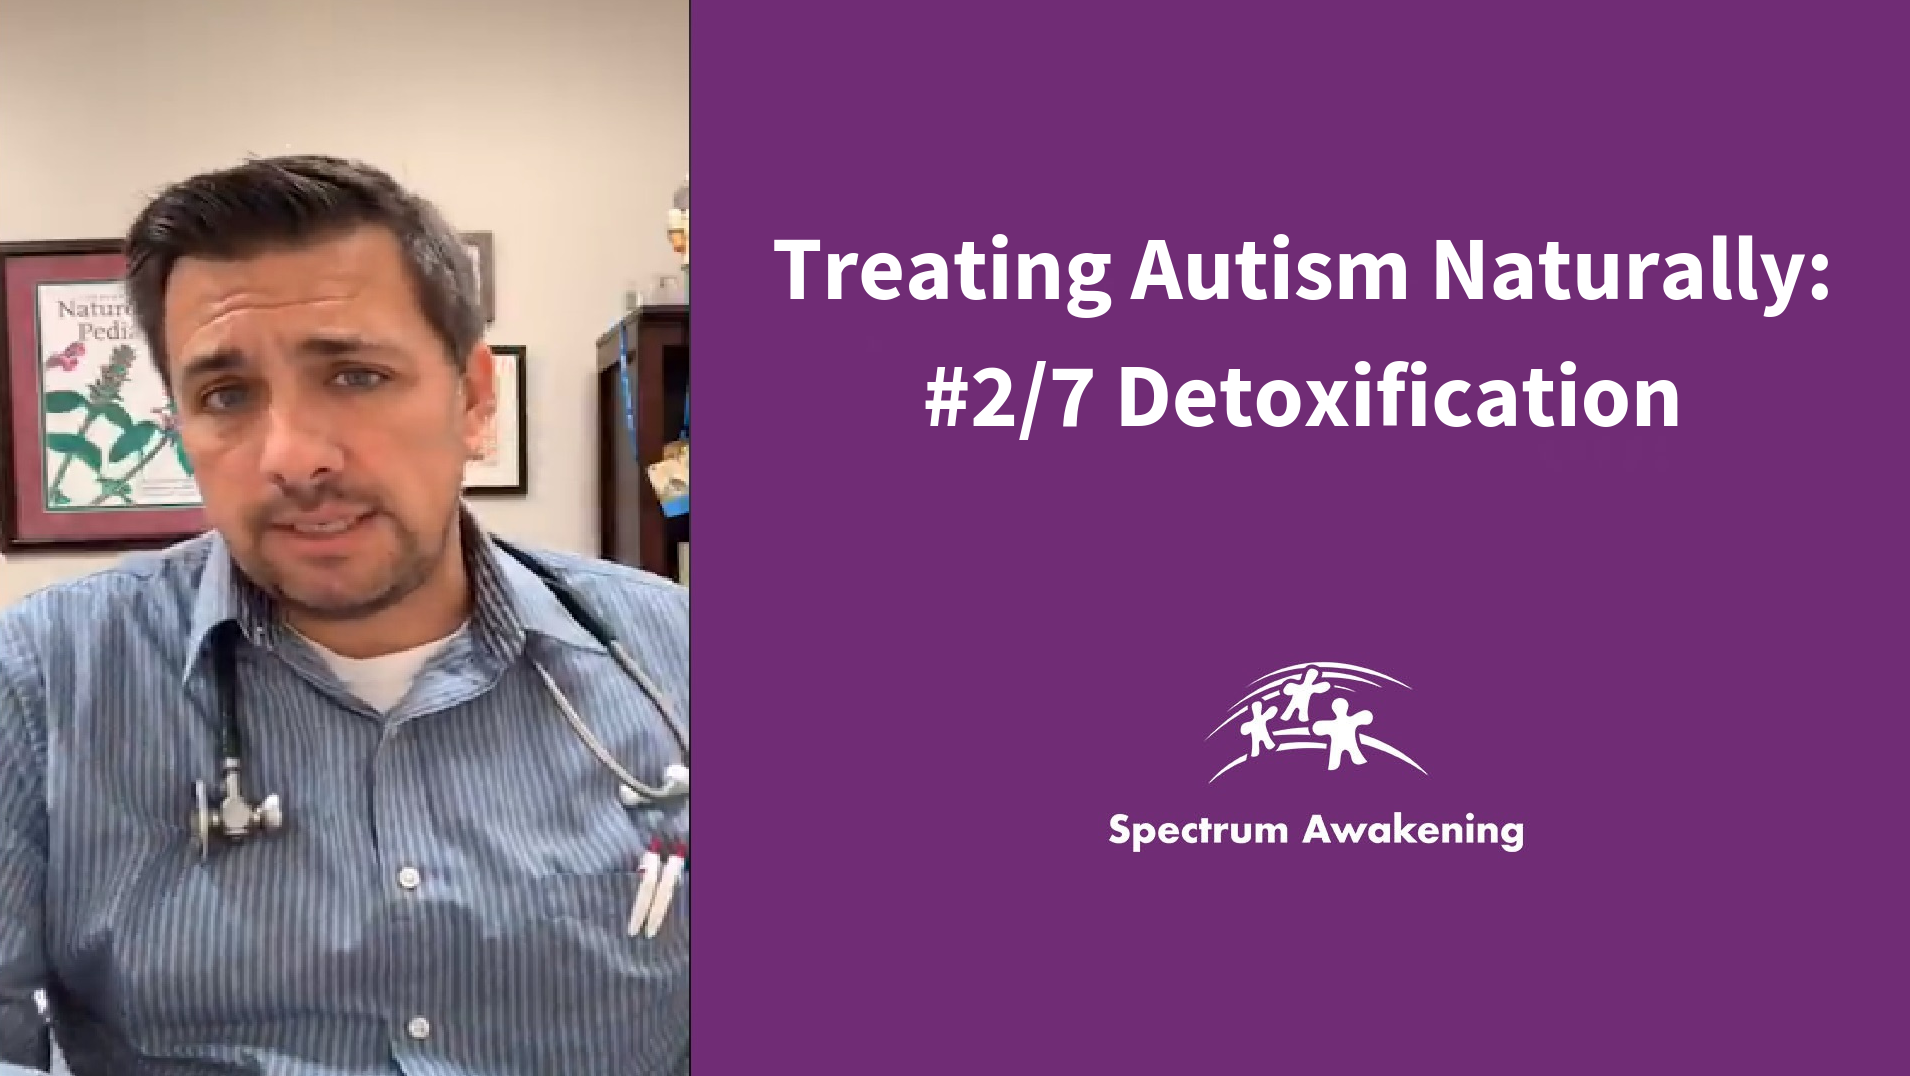 Treating Autism Naturally: #2/7 Detoxification